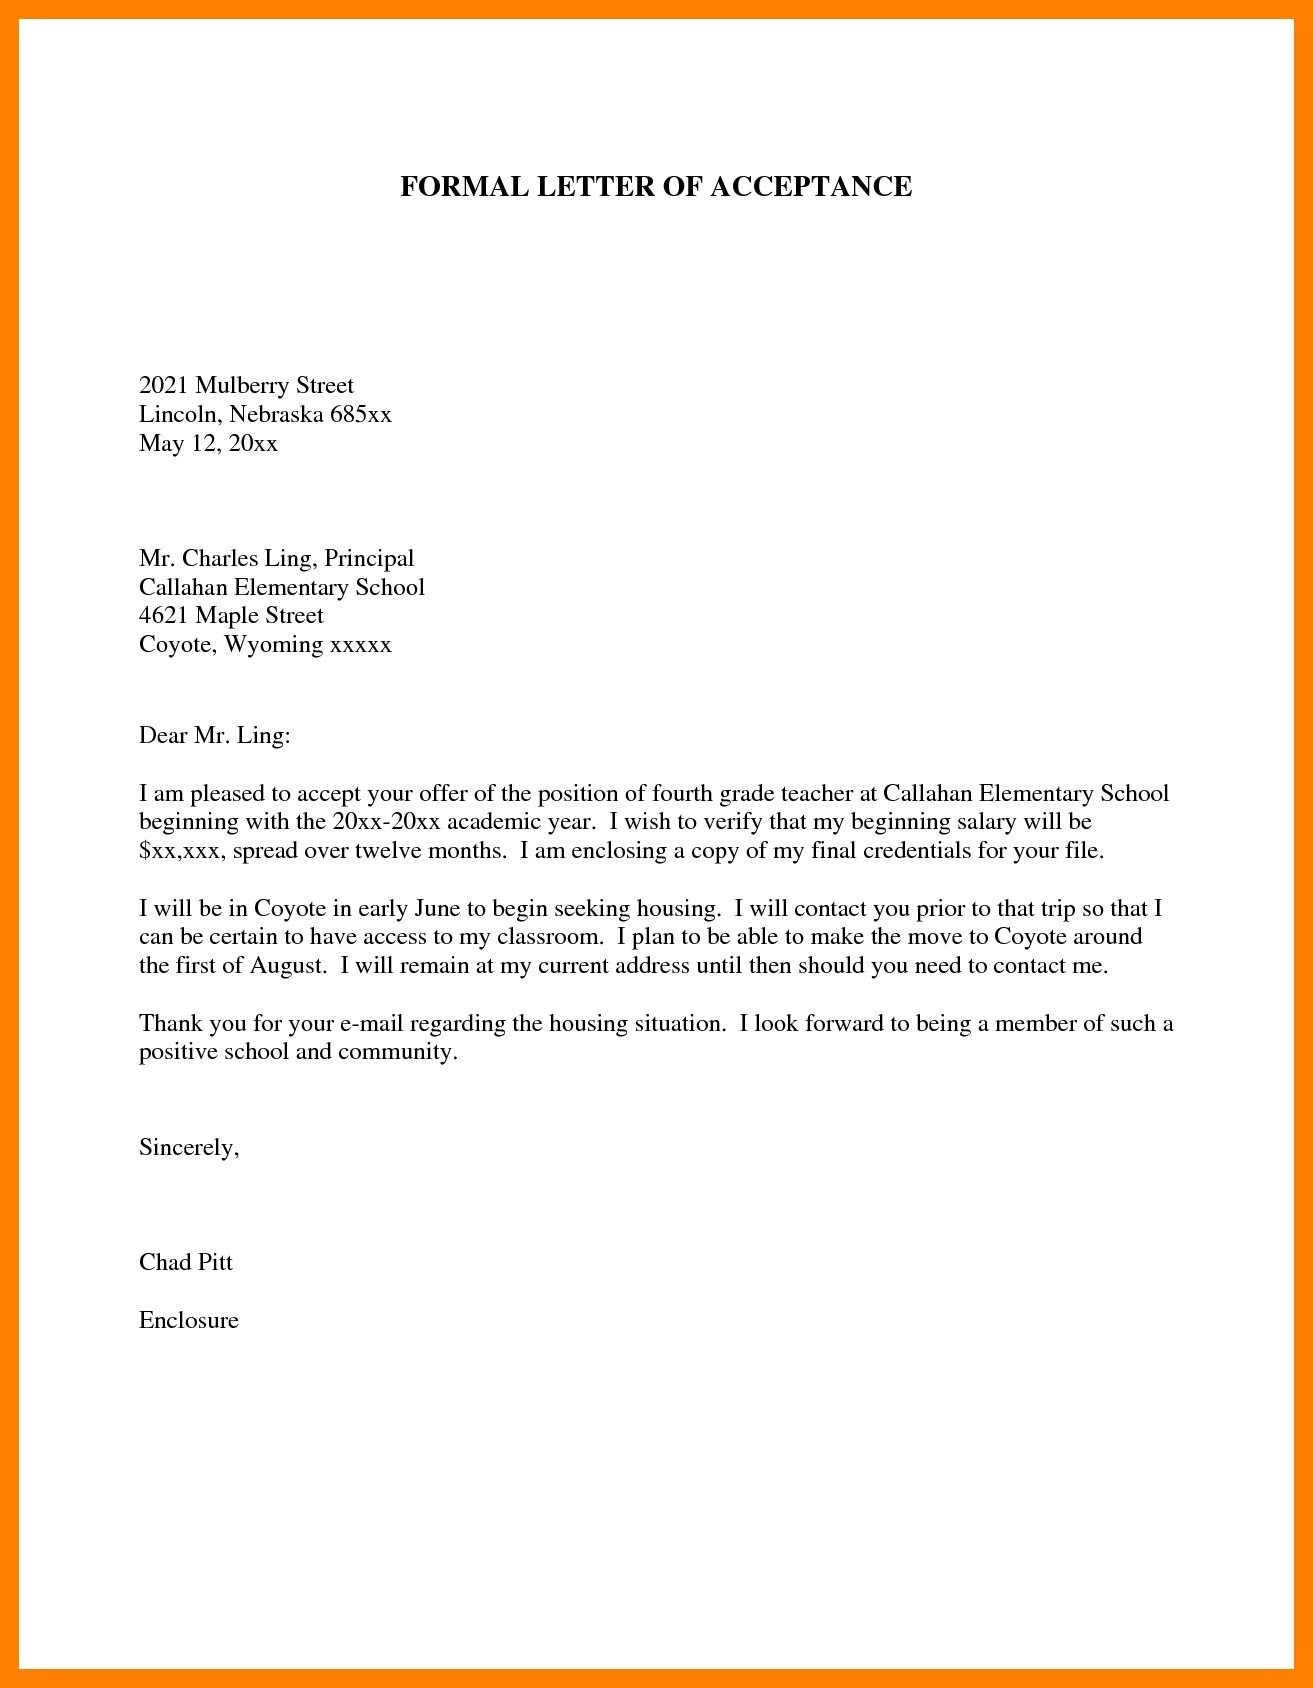 Credentialing Approval Letter Template - Sample formal Business Letter Template Fresh Admission Acceptance